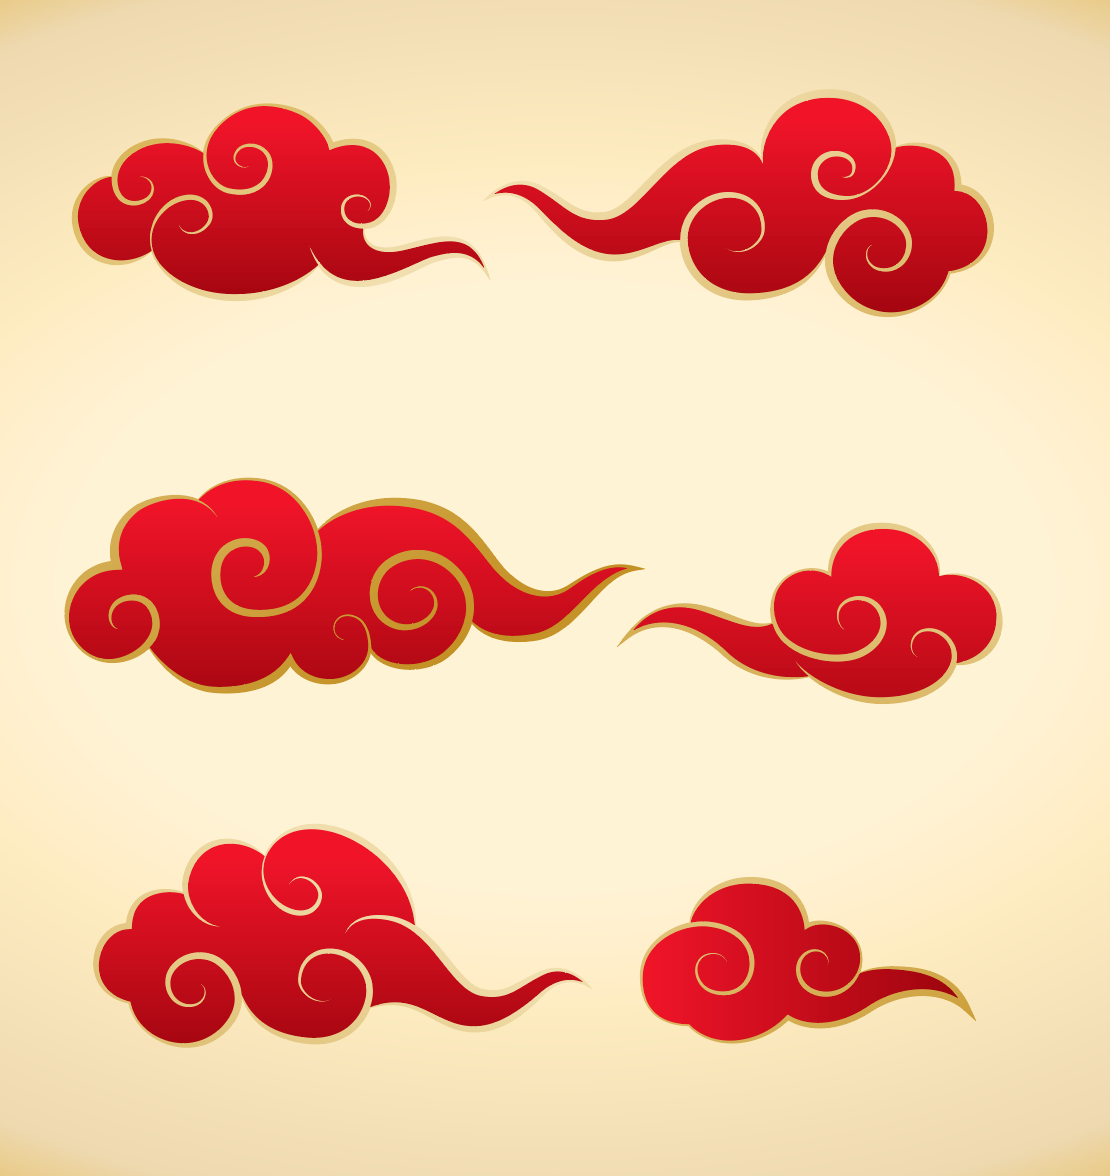 Chinese Traditional Clouds Shape Abstract Images Modern Graphic Design Abstract